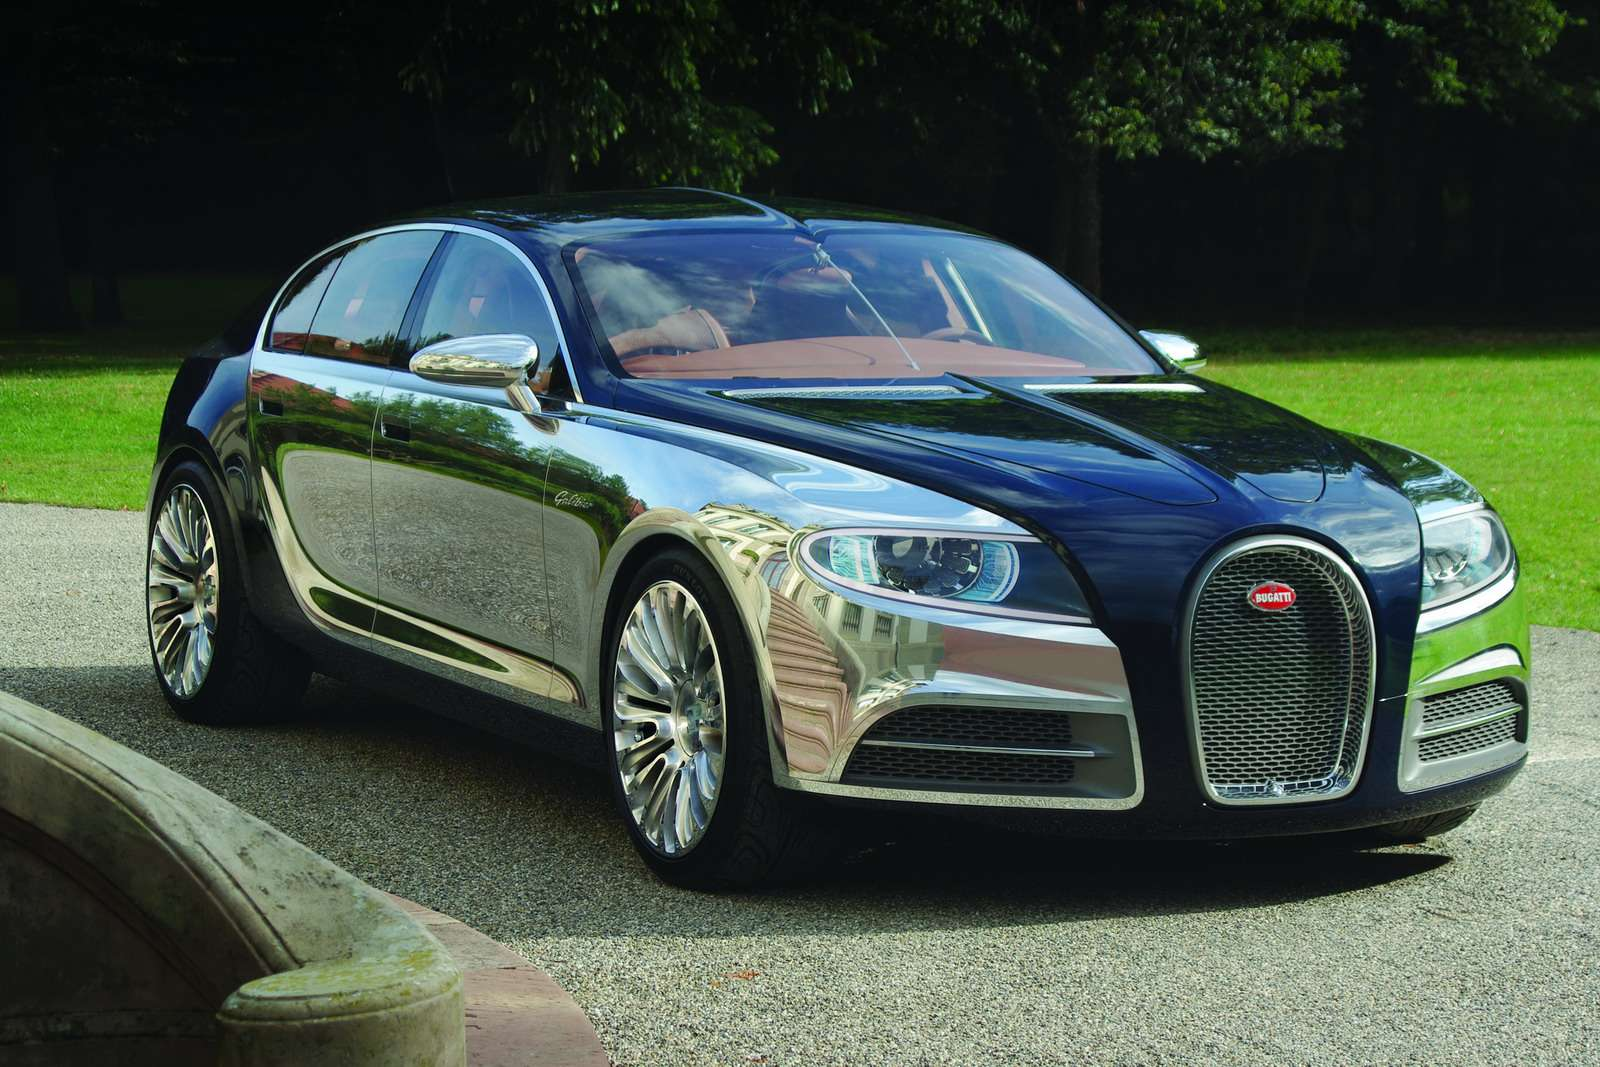 Bugatti 16C Galibier mote photo marzec 2010